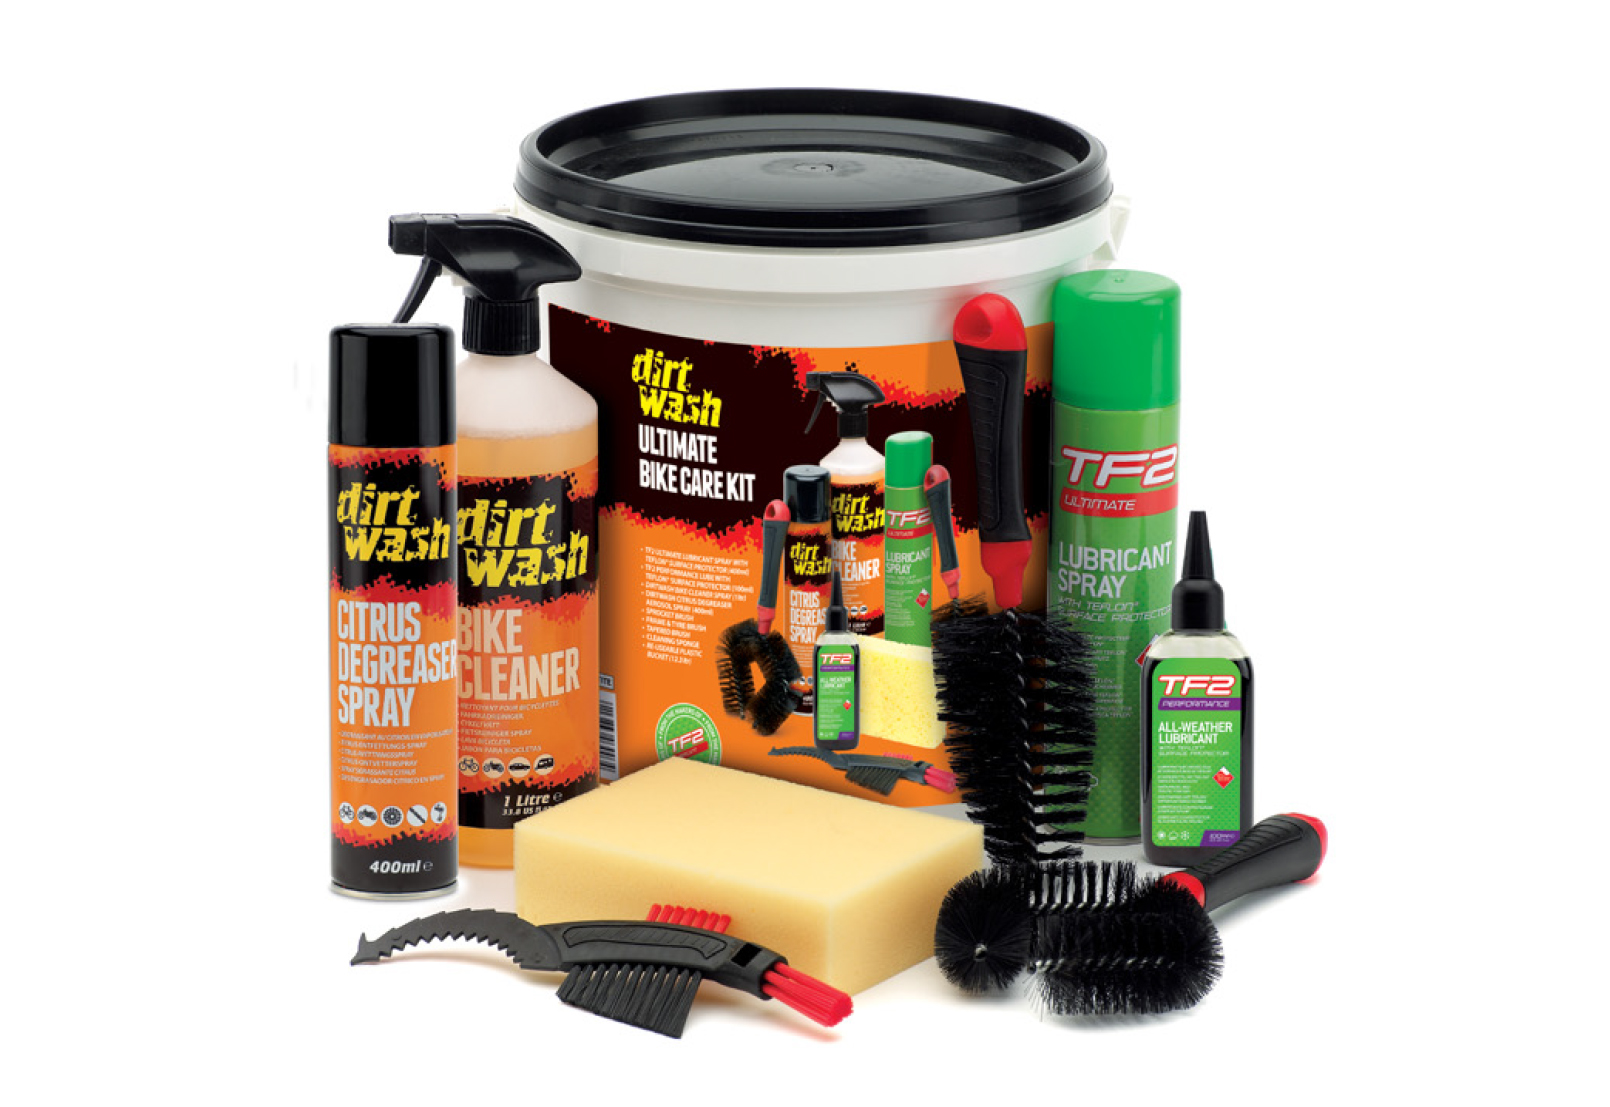 Set za održavanje bicikla TF2 ULTIMATE BIKE CARE KIT WELDTITE 03003